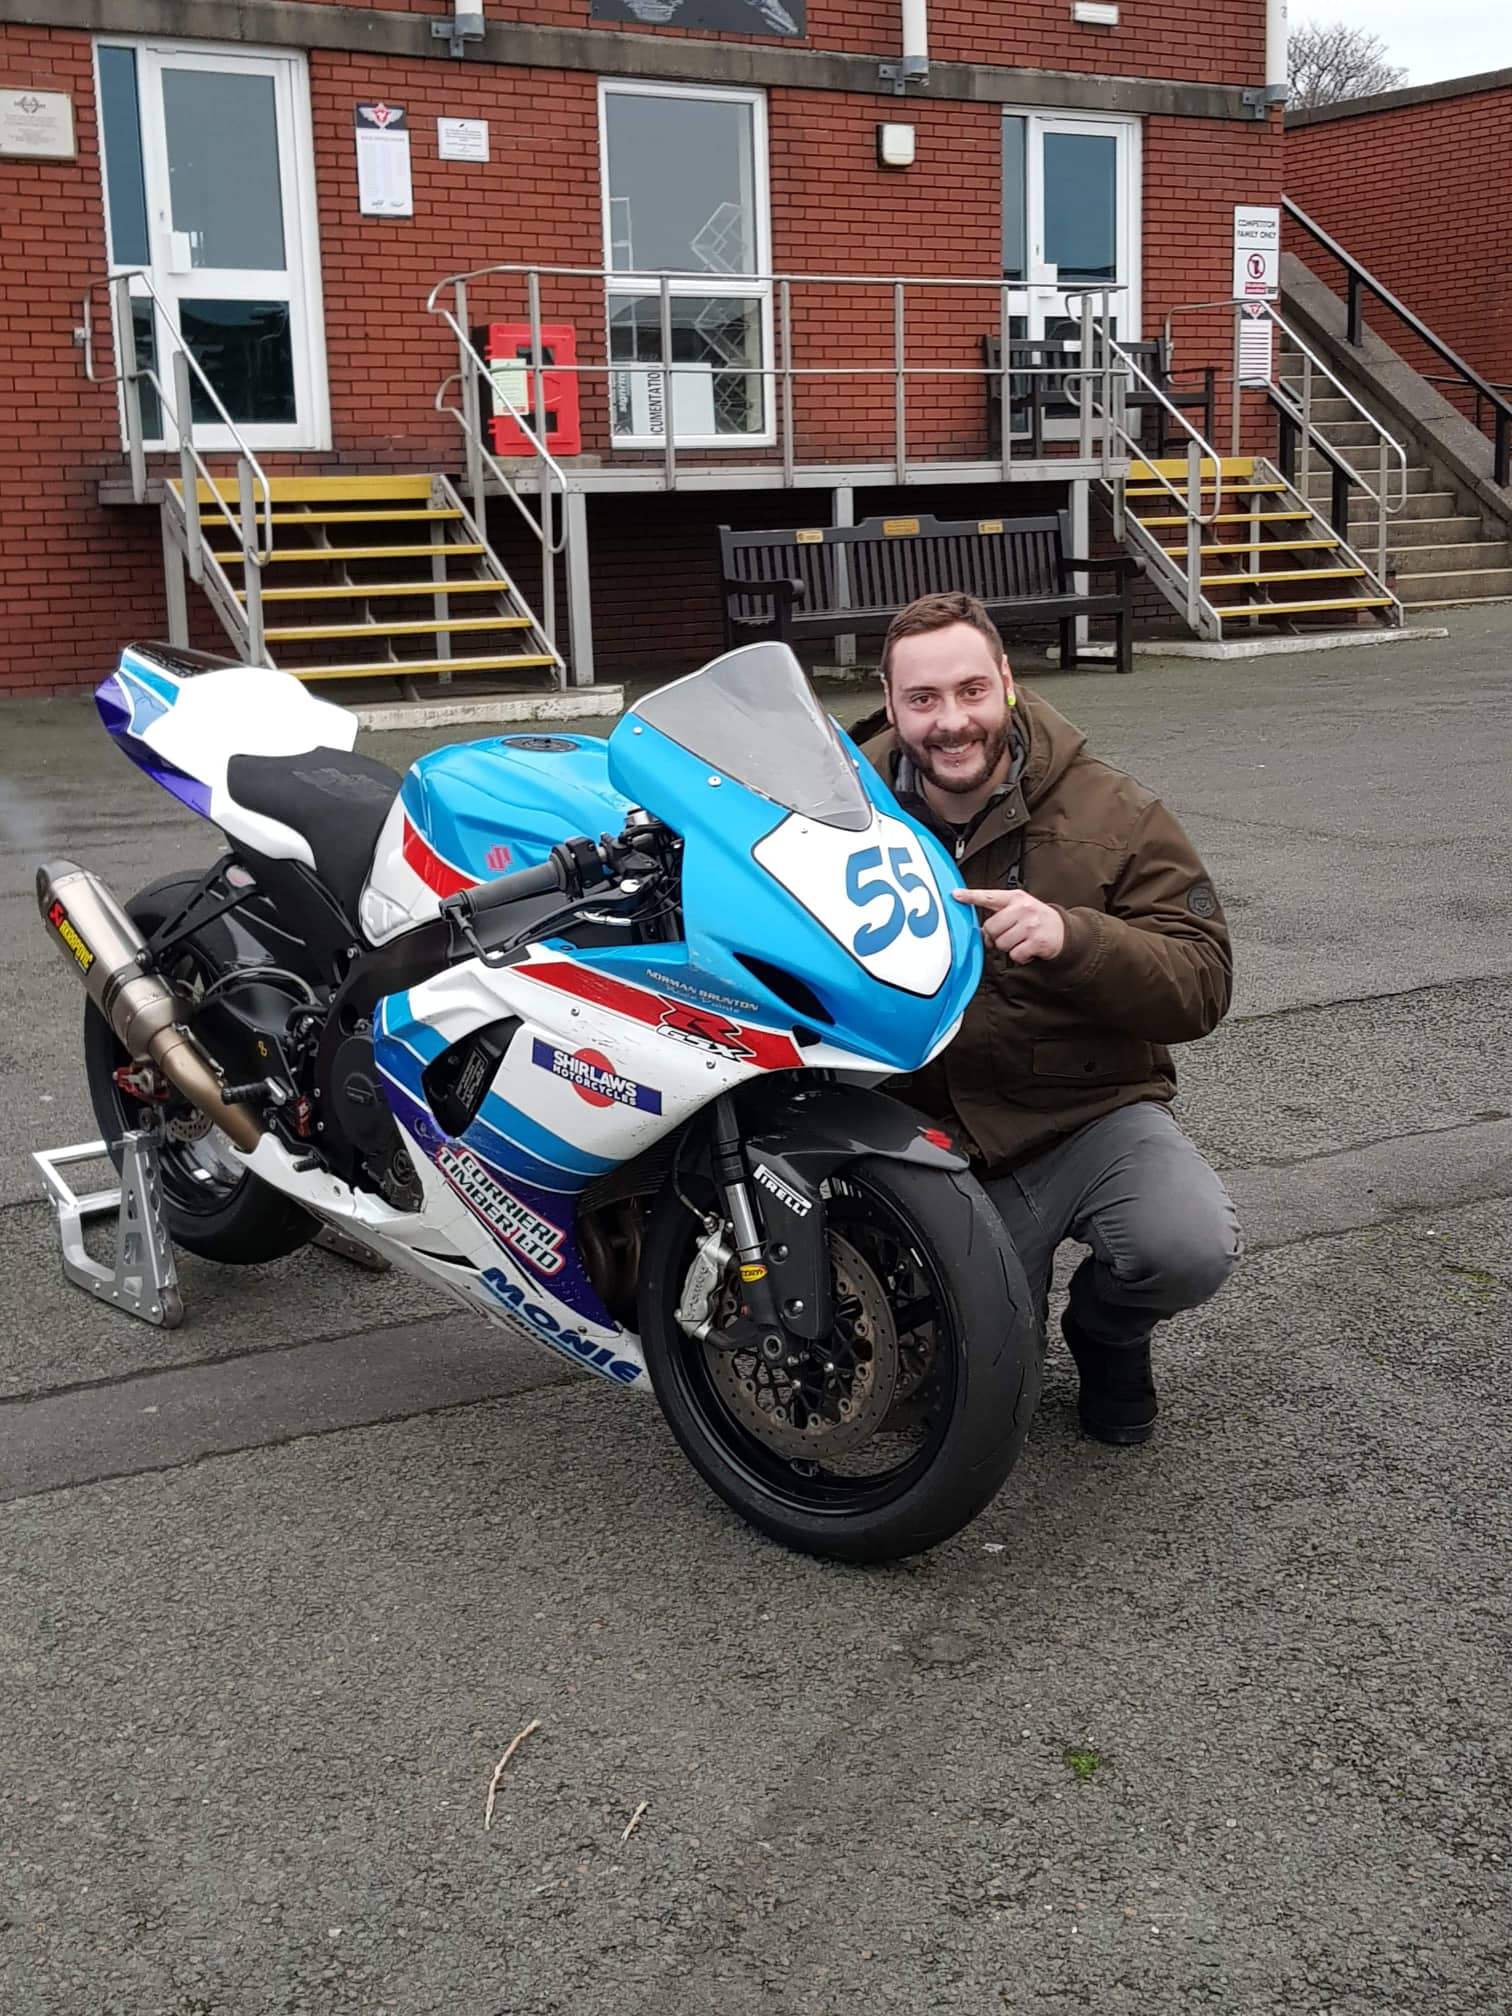 Popular IRRC Racer Datzer Excited About TT 2019 Quest After First Mountain Course Experience